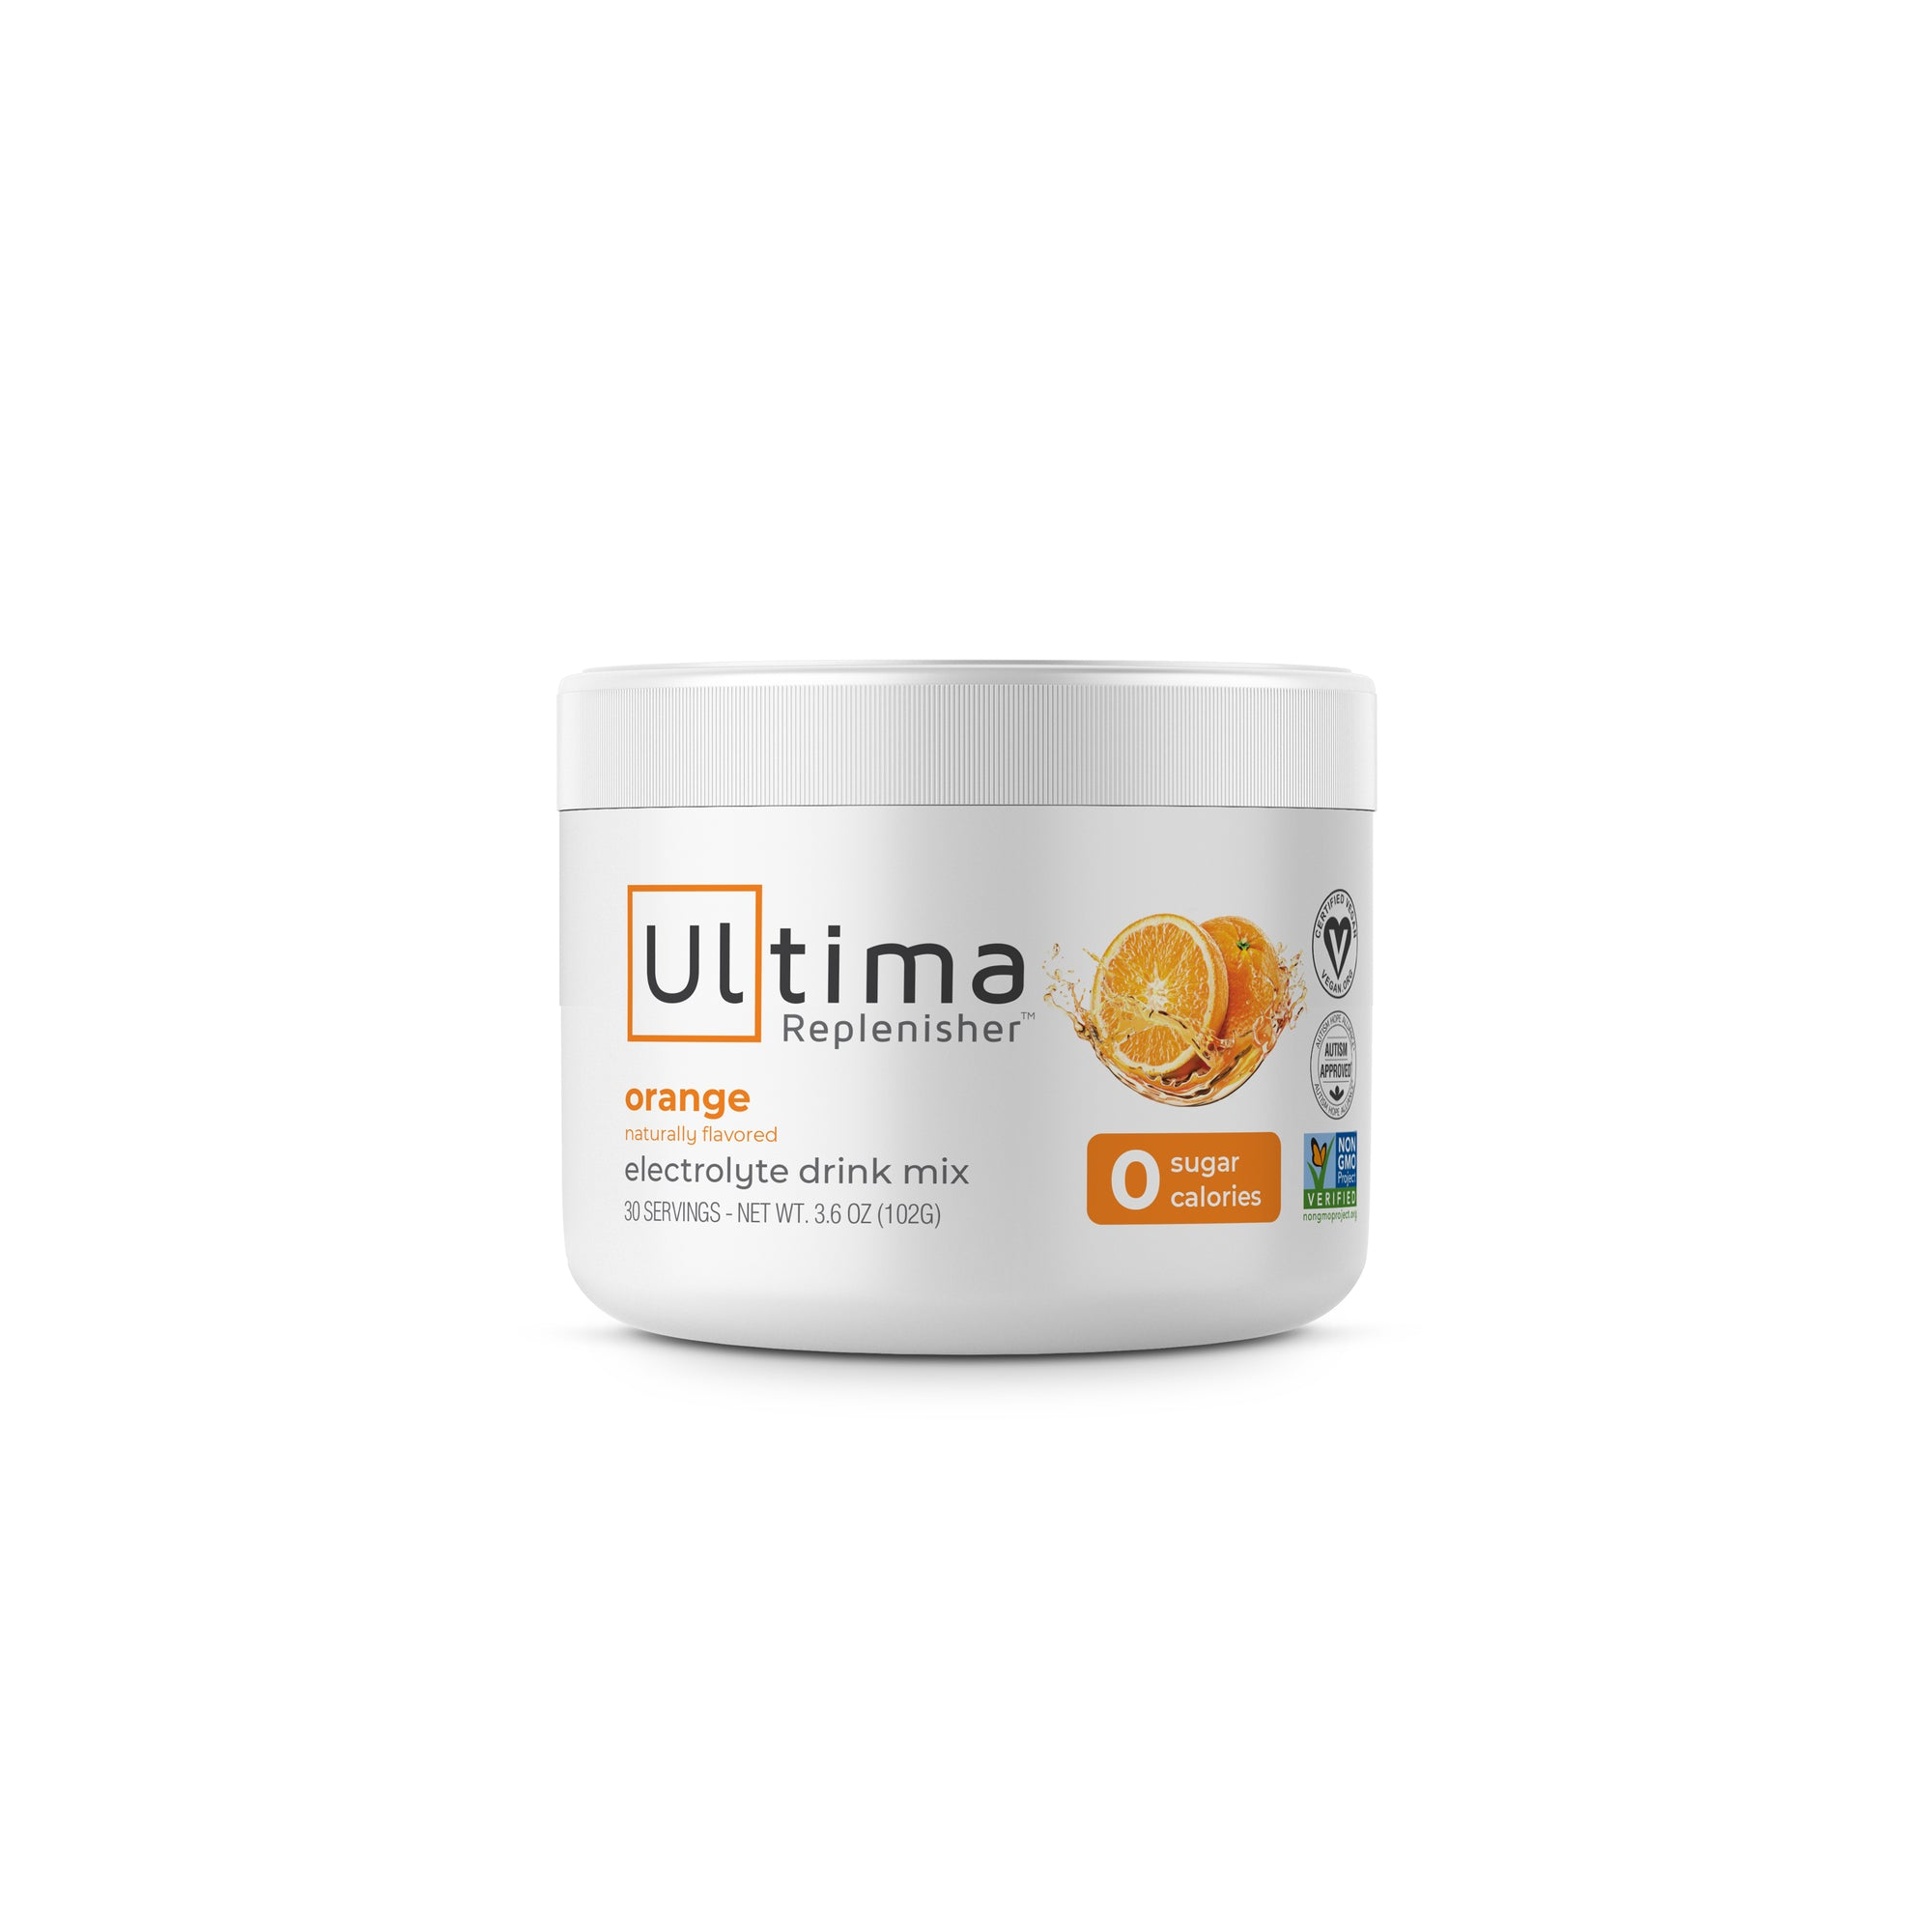 Ultima Replenisher Electrolyte Hudration Powder 30 Serving Canister Orange Flavor